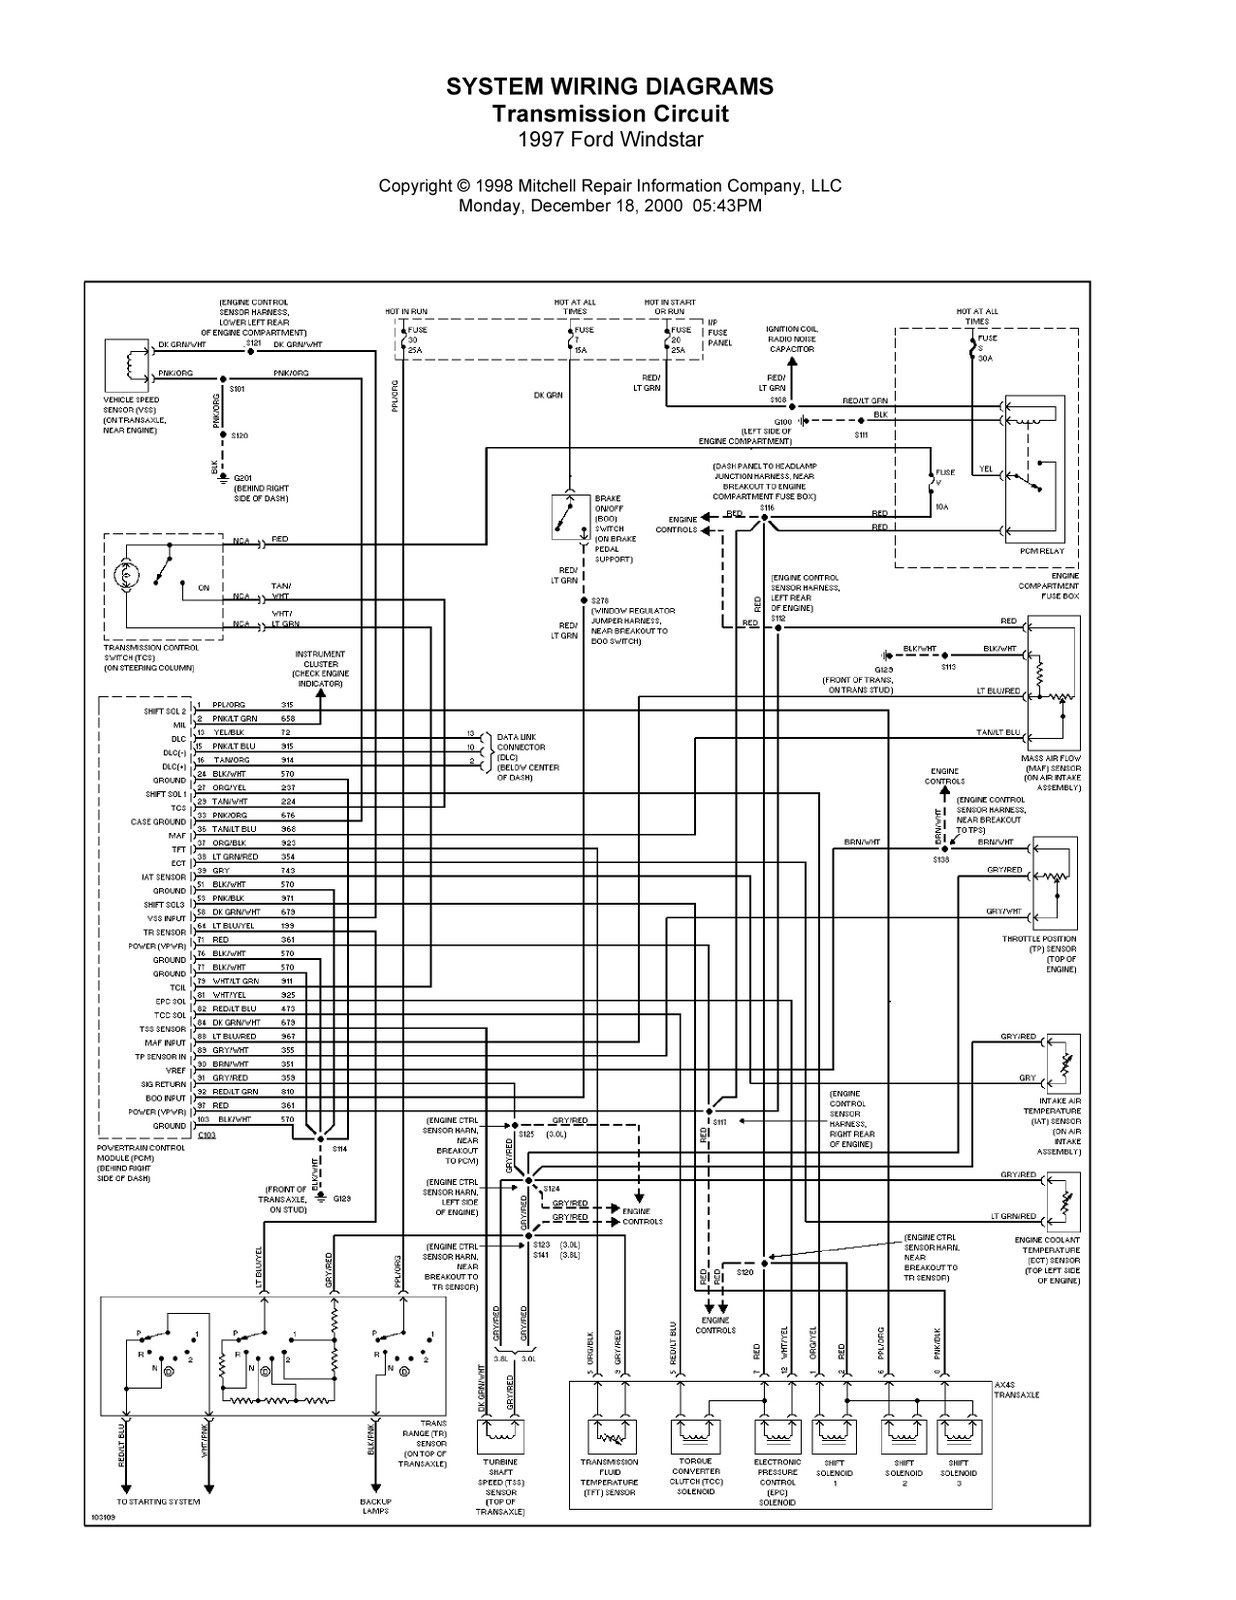 2011 Ford Ranger Pcm Diagram Content Resource Of Wiring 1999 Engine 1997 Windstar Complete System Diagrams Rh Wiringdiagramsolution Blogspot Com 2002